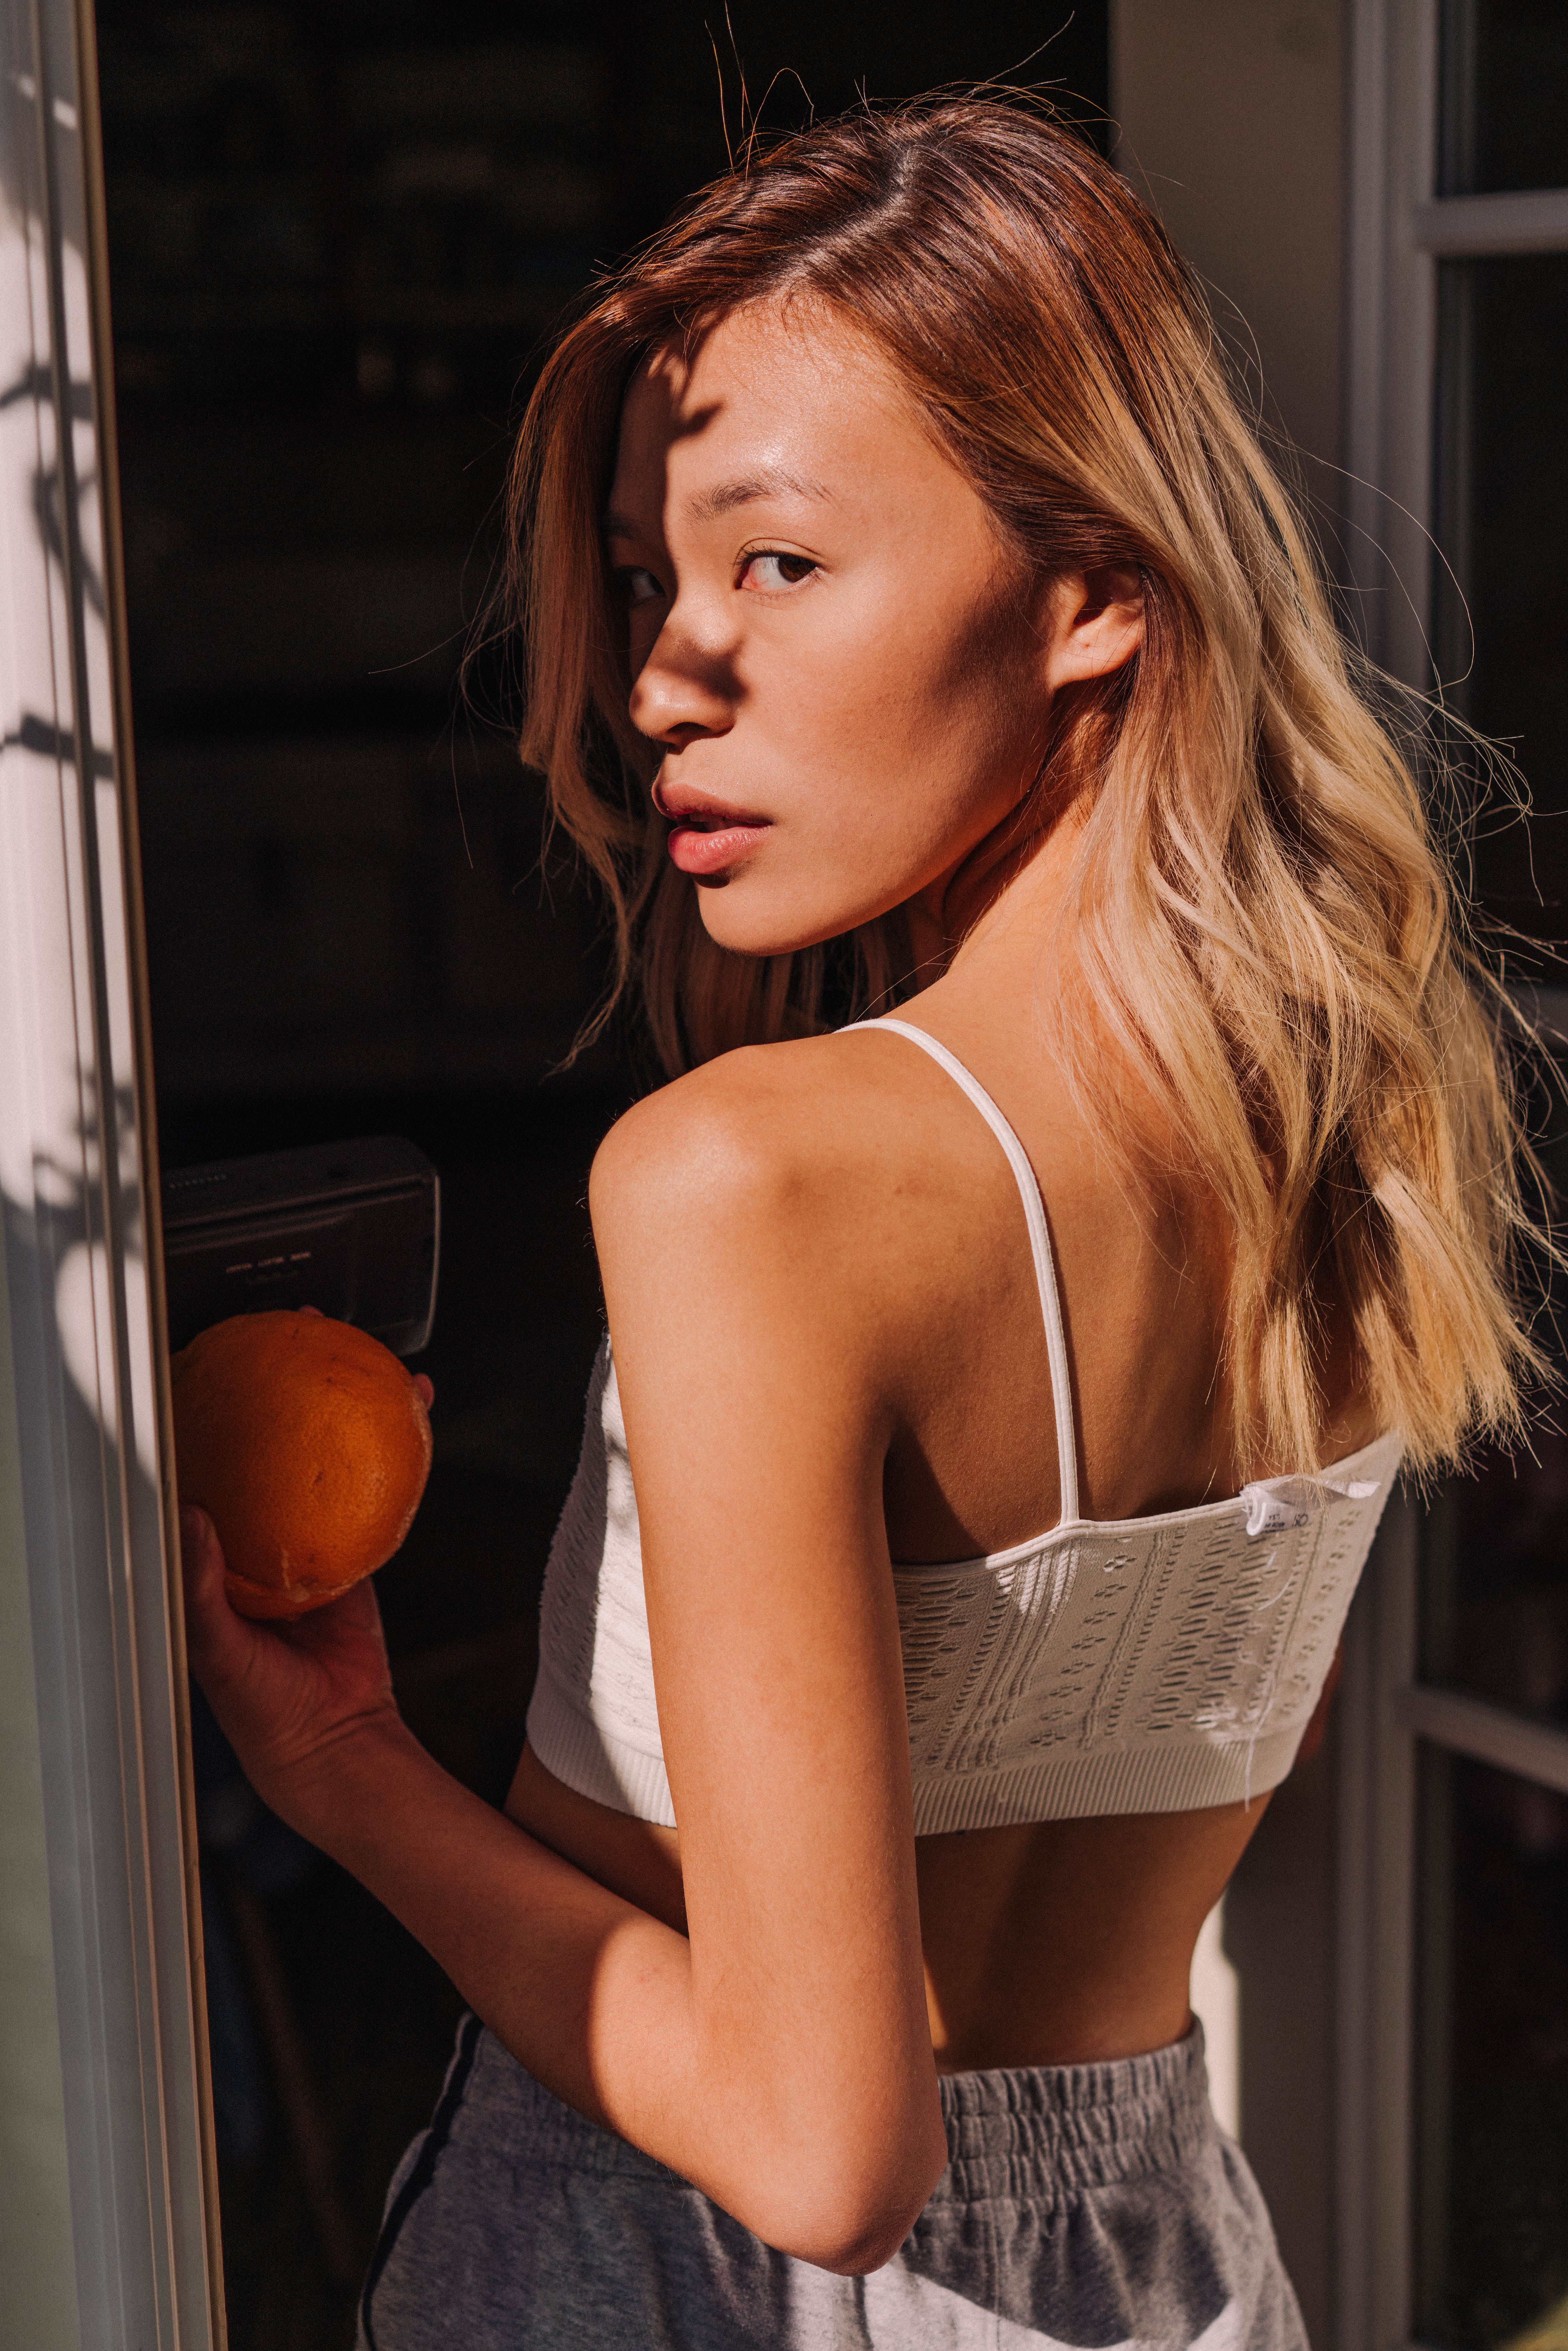 woman wearing white spaghetti strap crop top and holding orange fruit